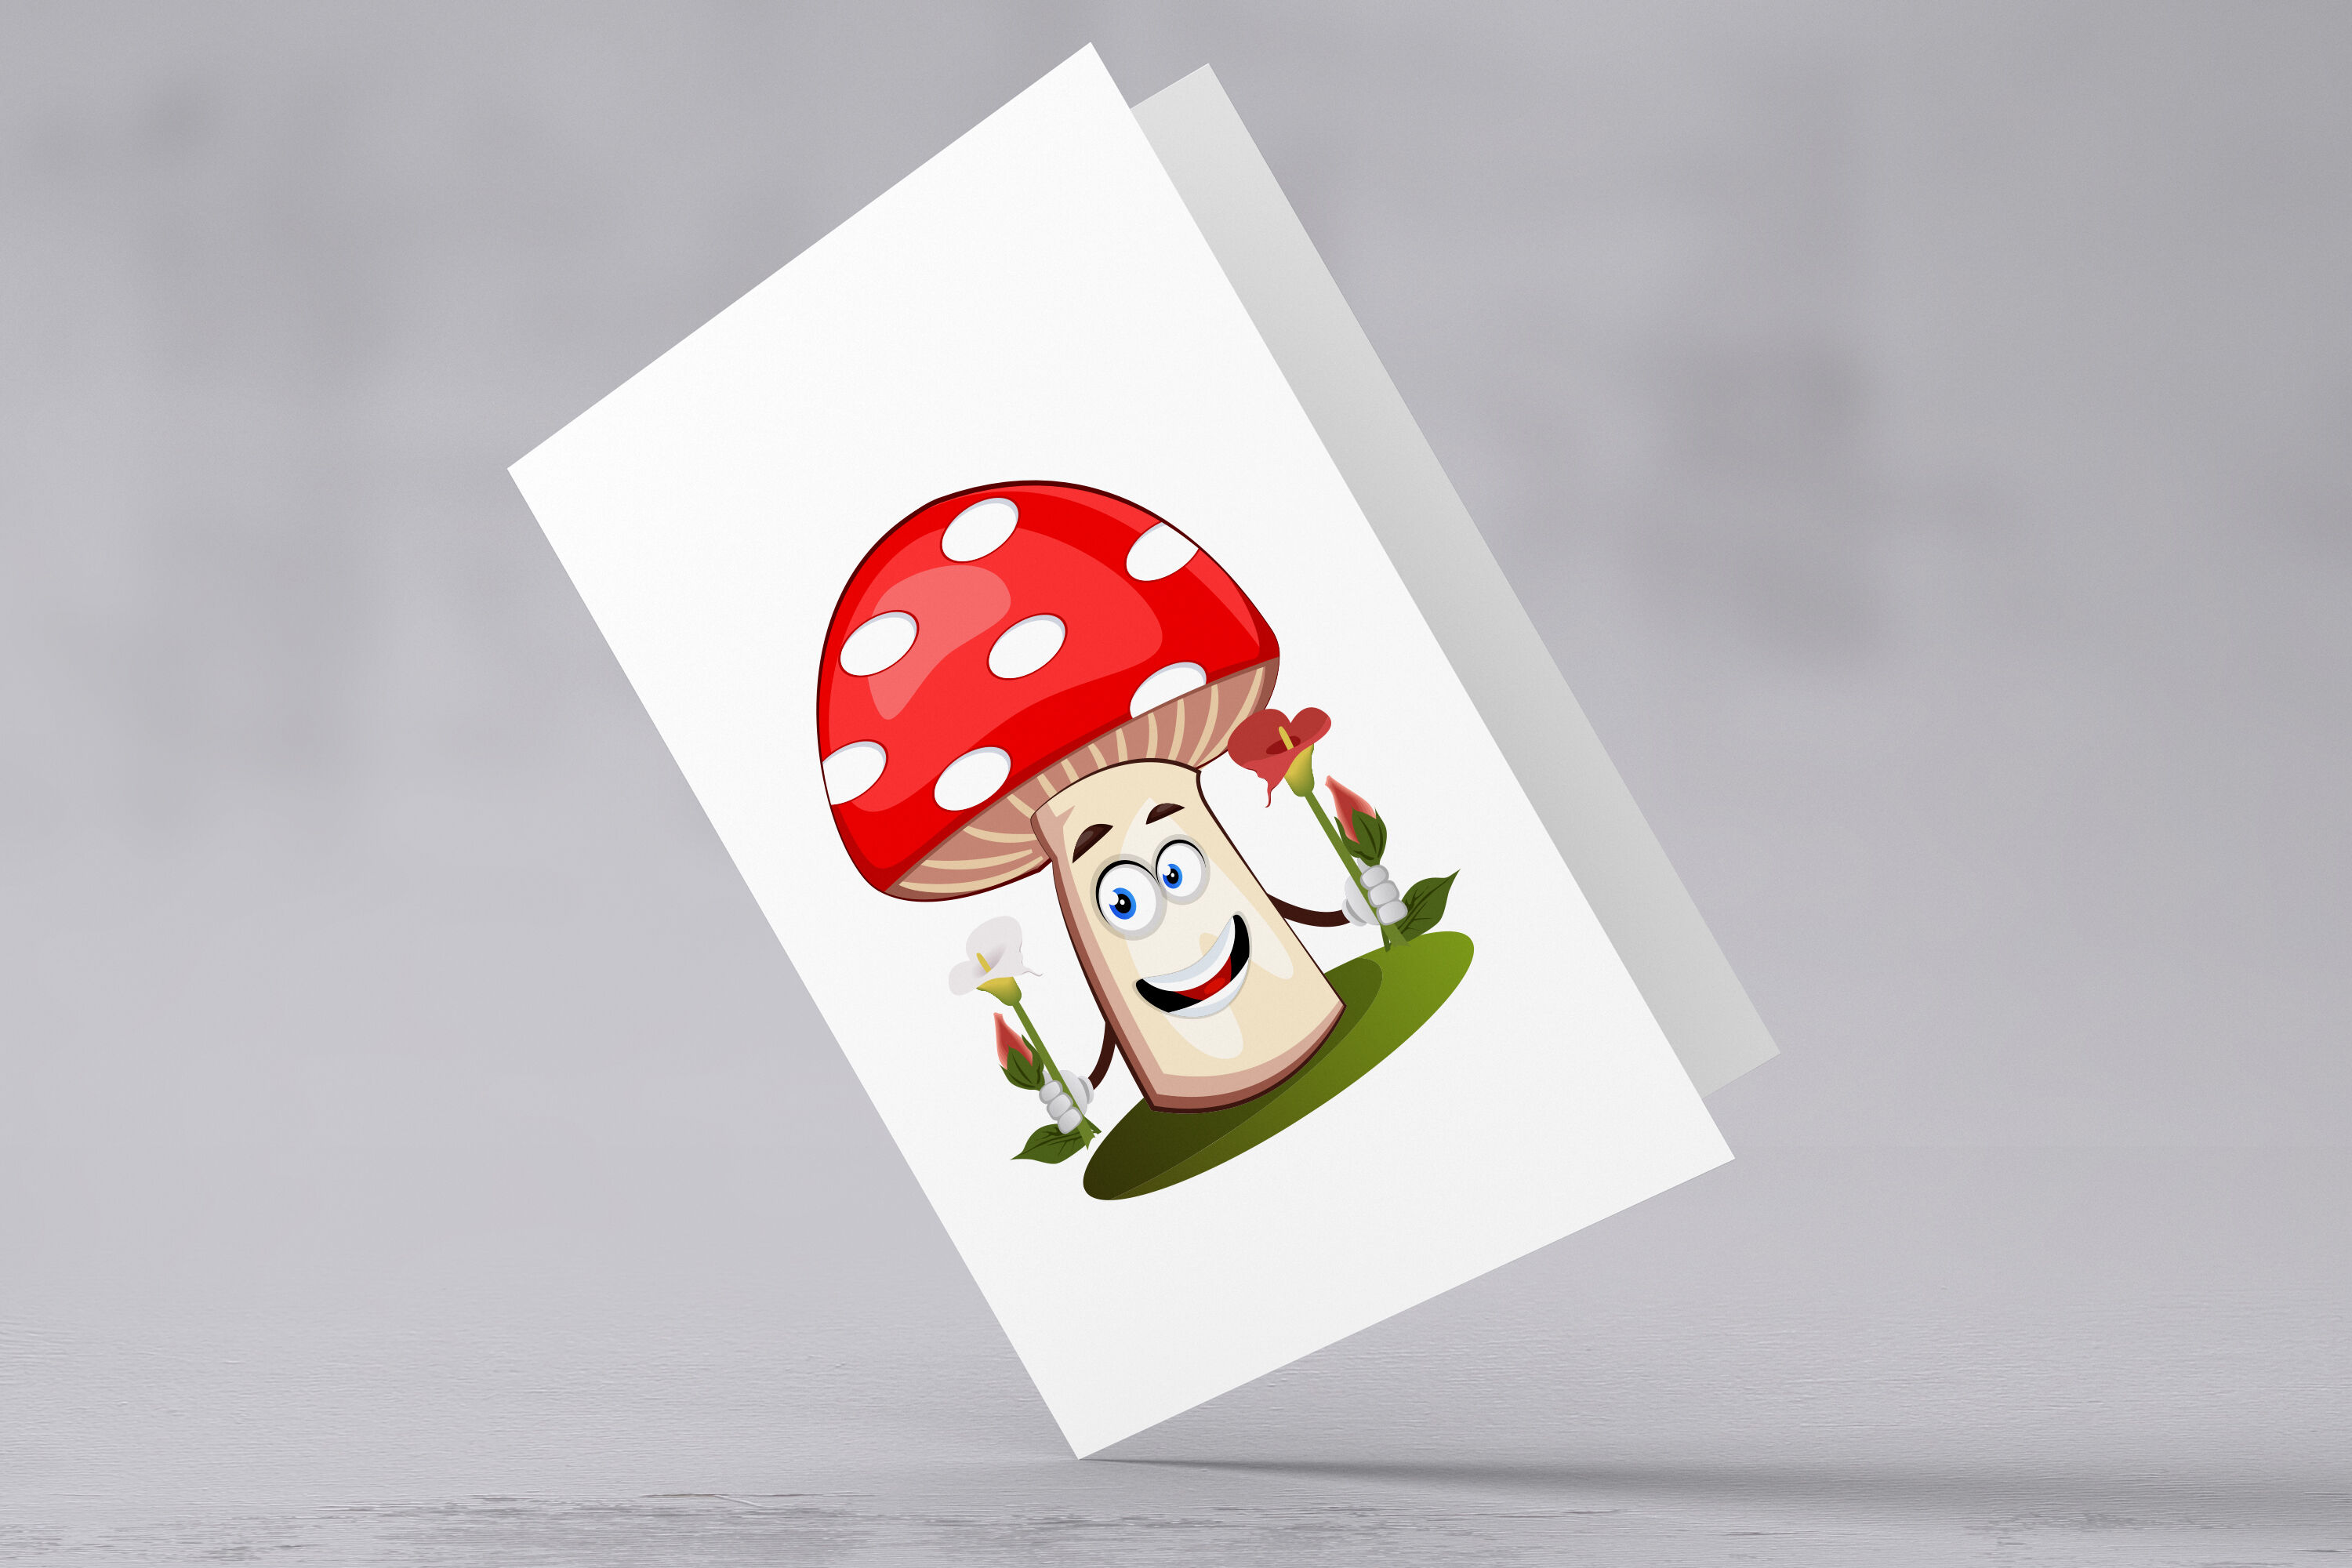 38x Mushroom Character And Mascot Collection Illustration By